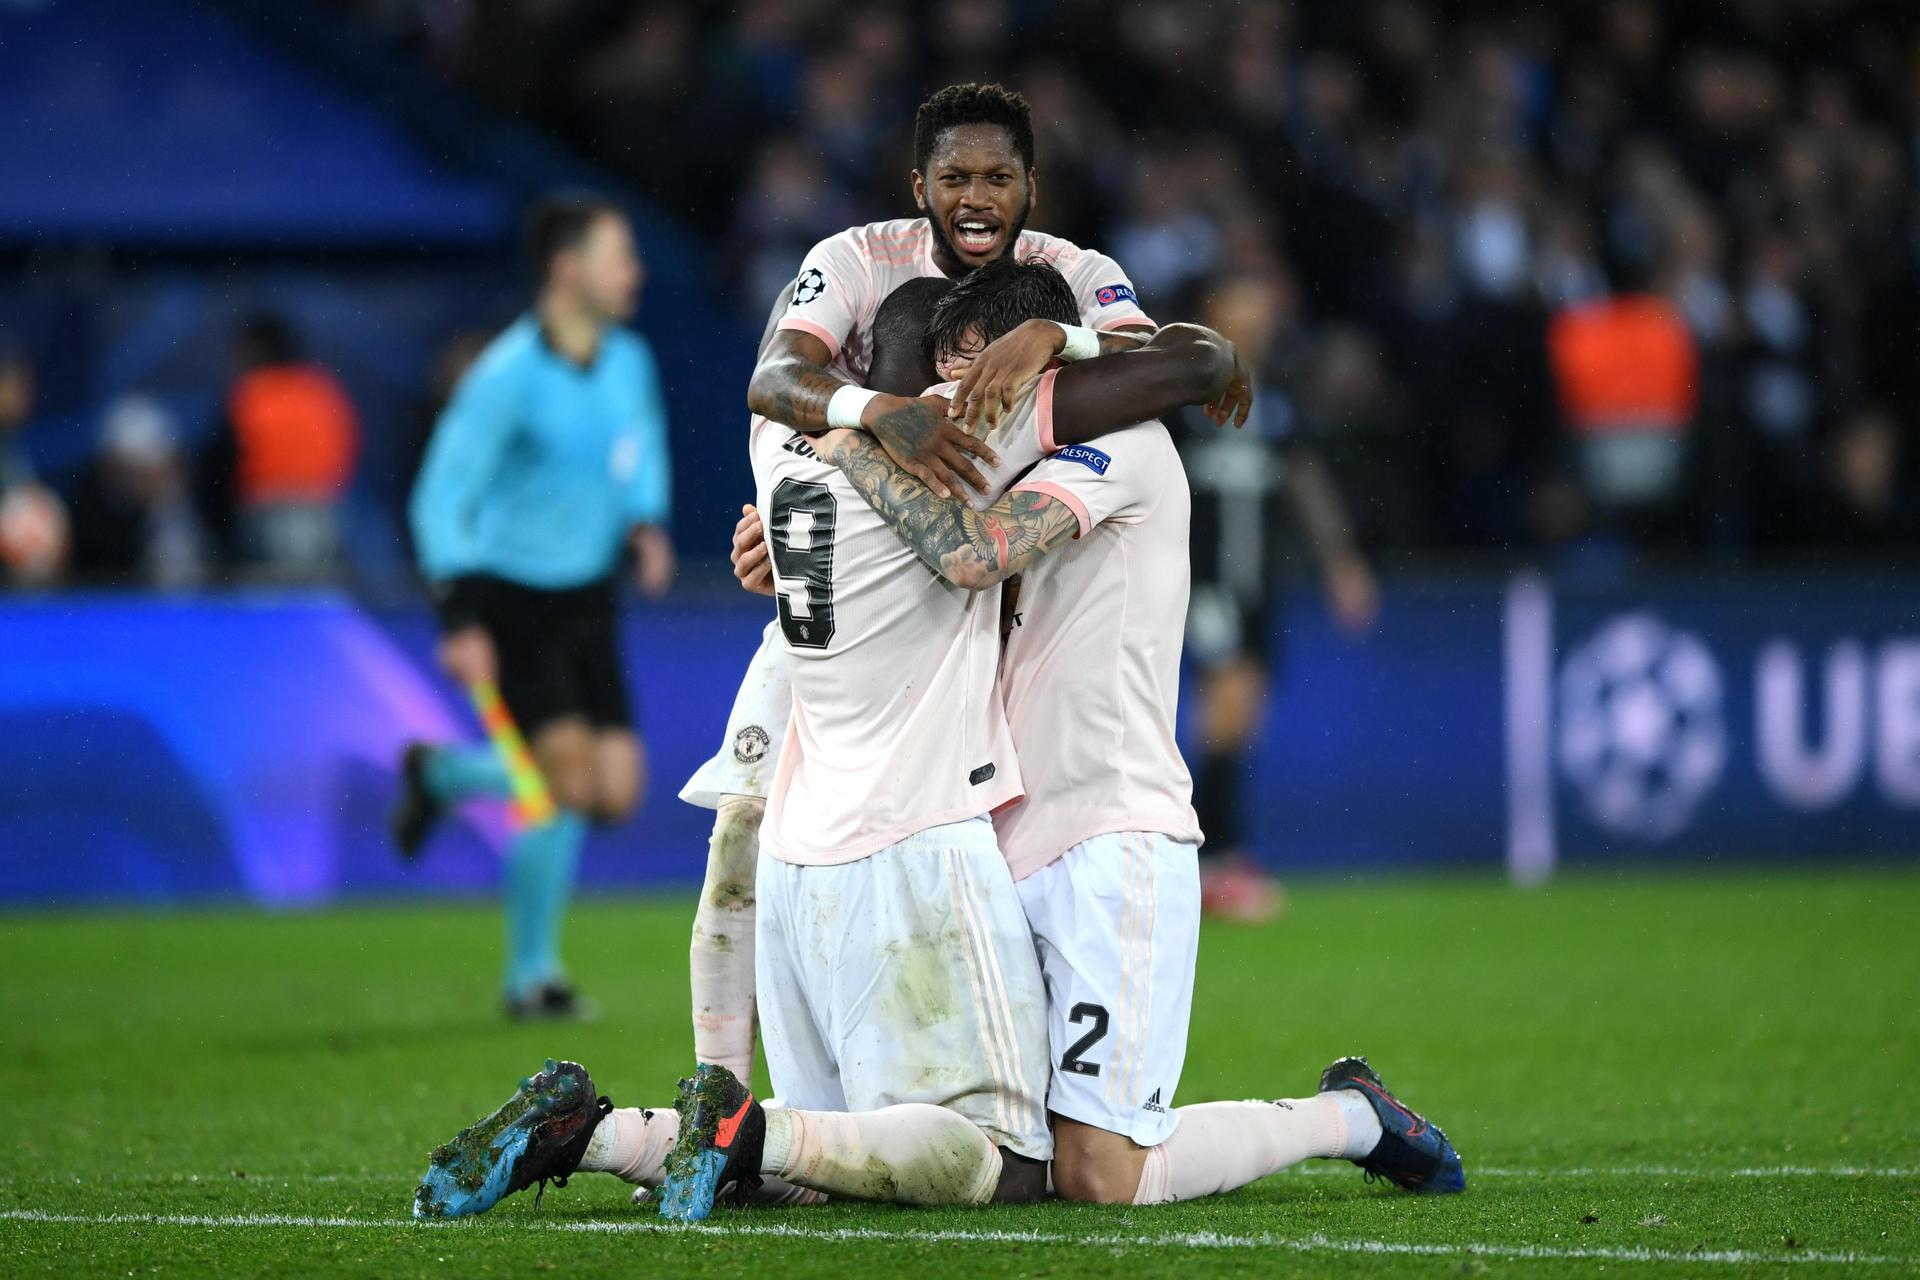 United players celebrating against PSG.